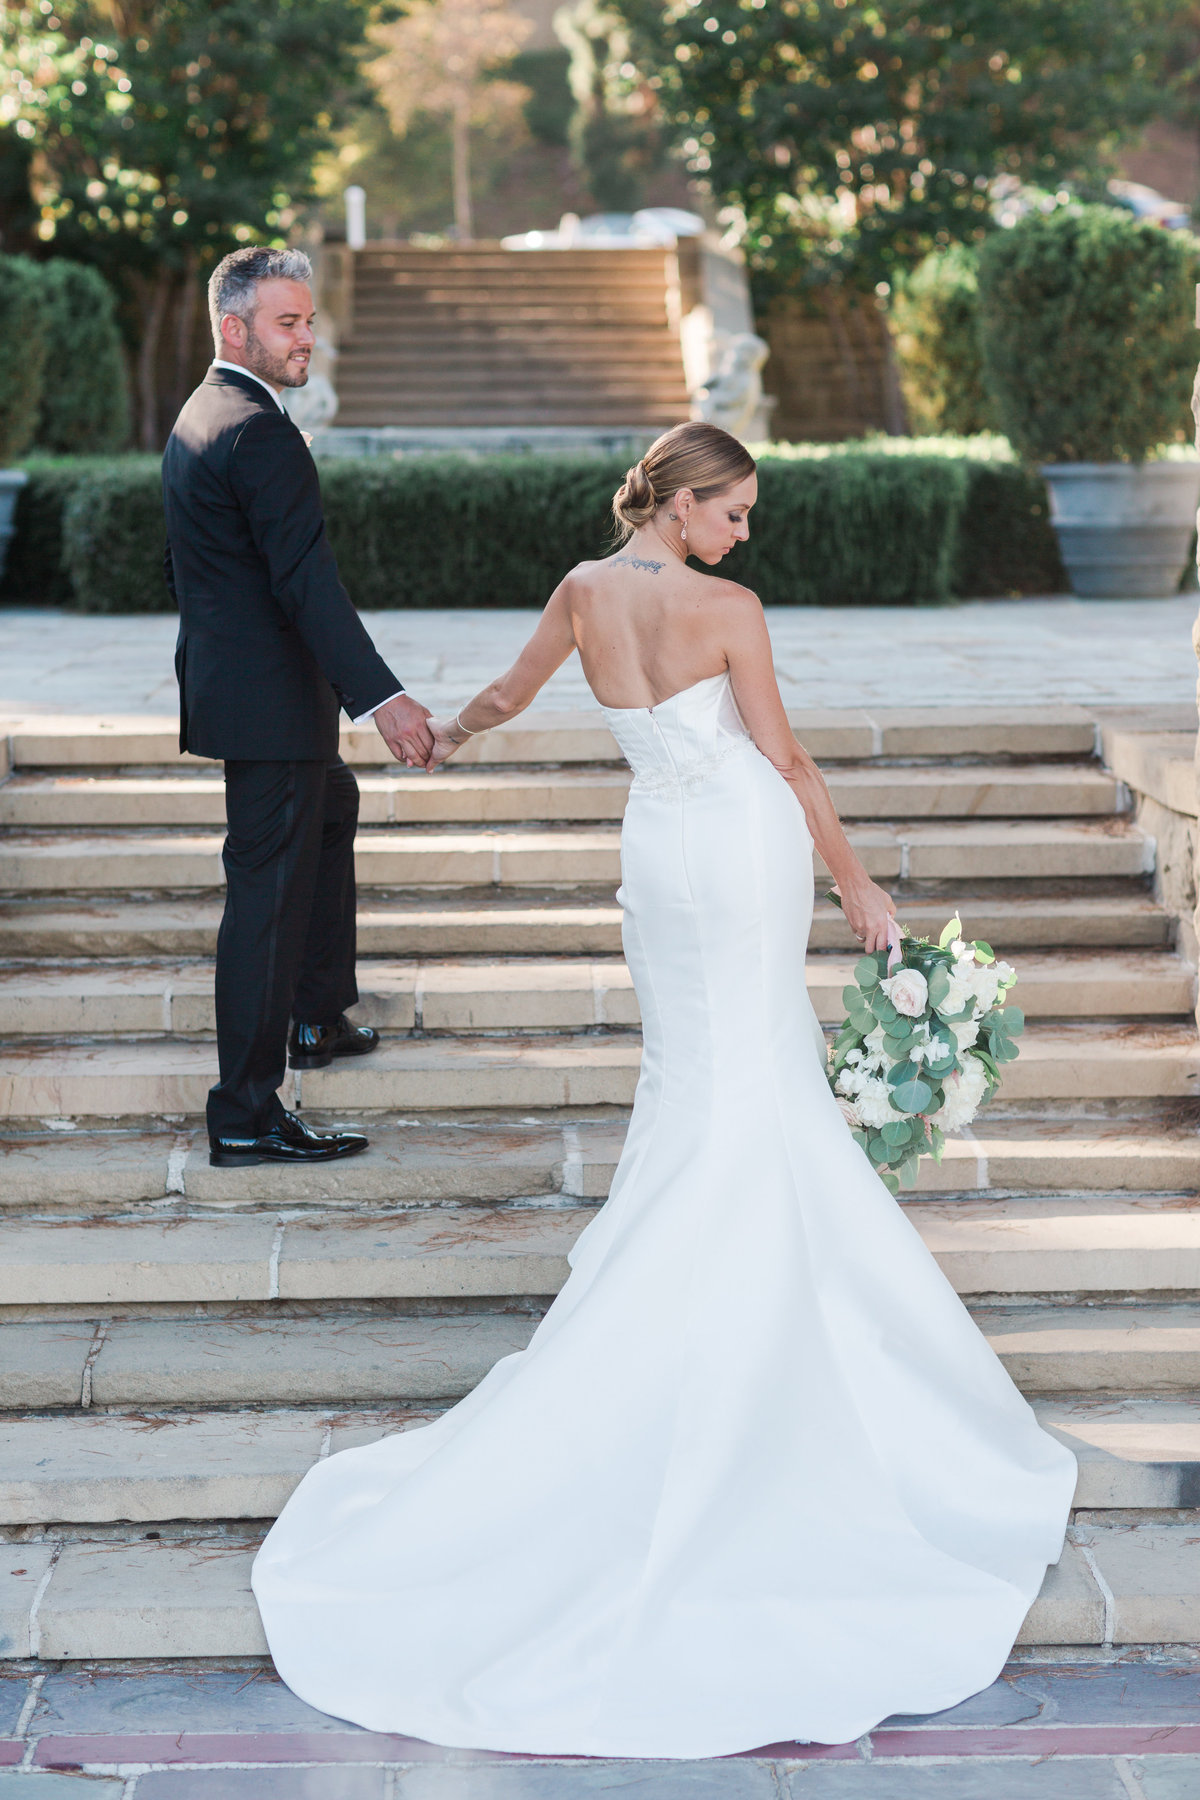 Greystone_Mansion_Intimate_Black_Tie_Wedding_Valorie_Darling_Photography - 133 of 206